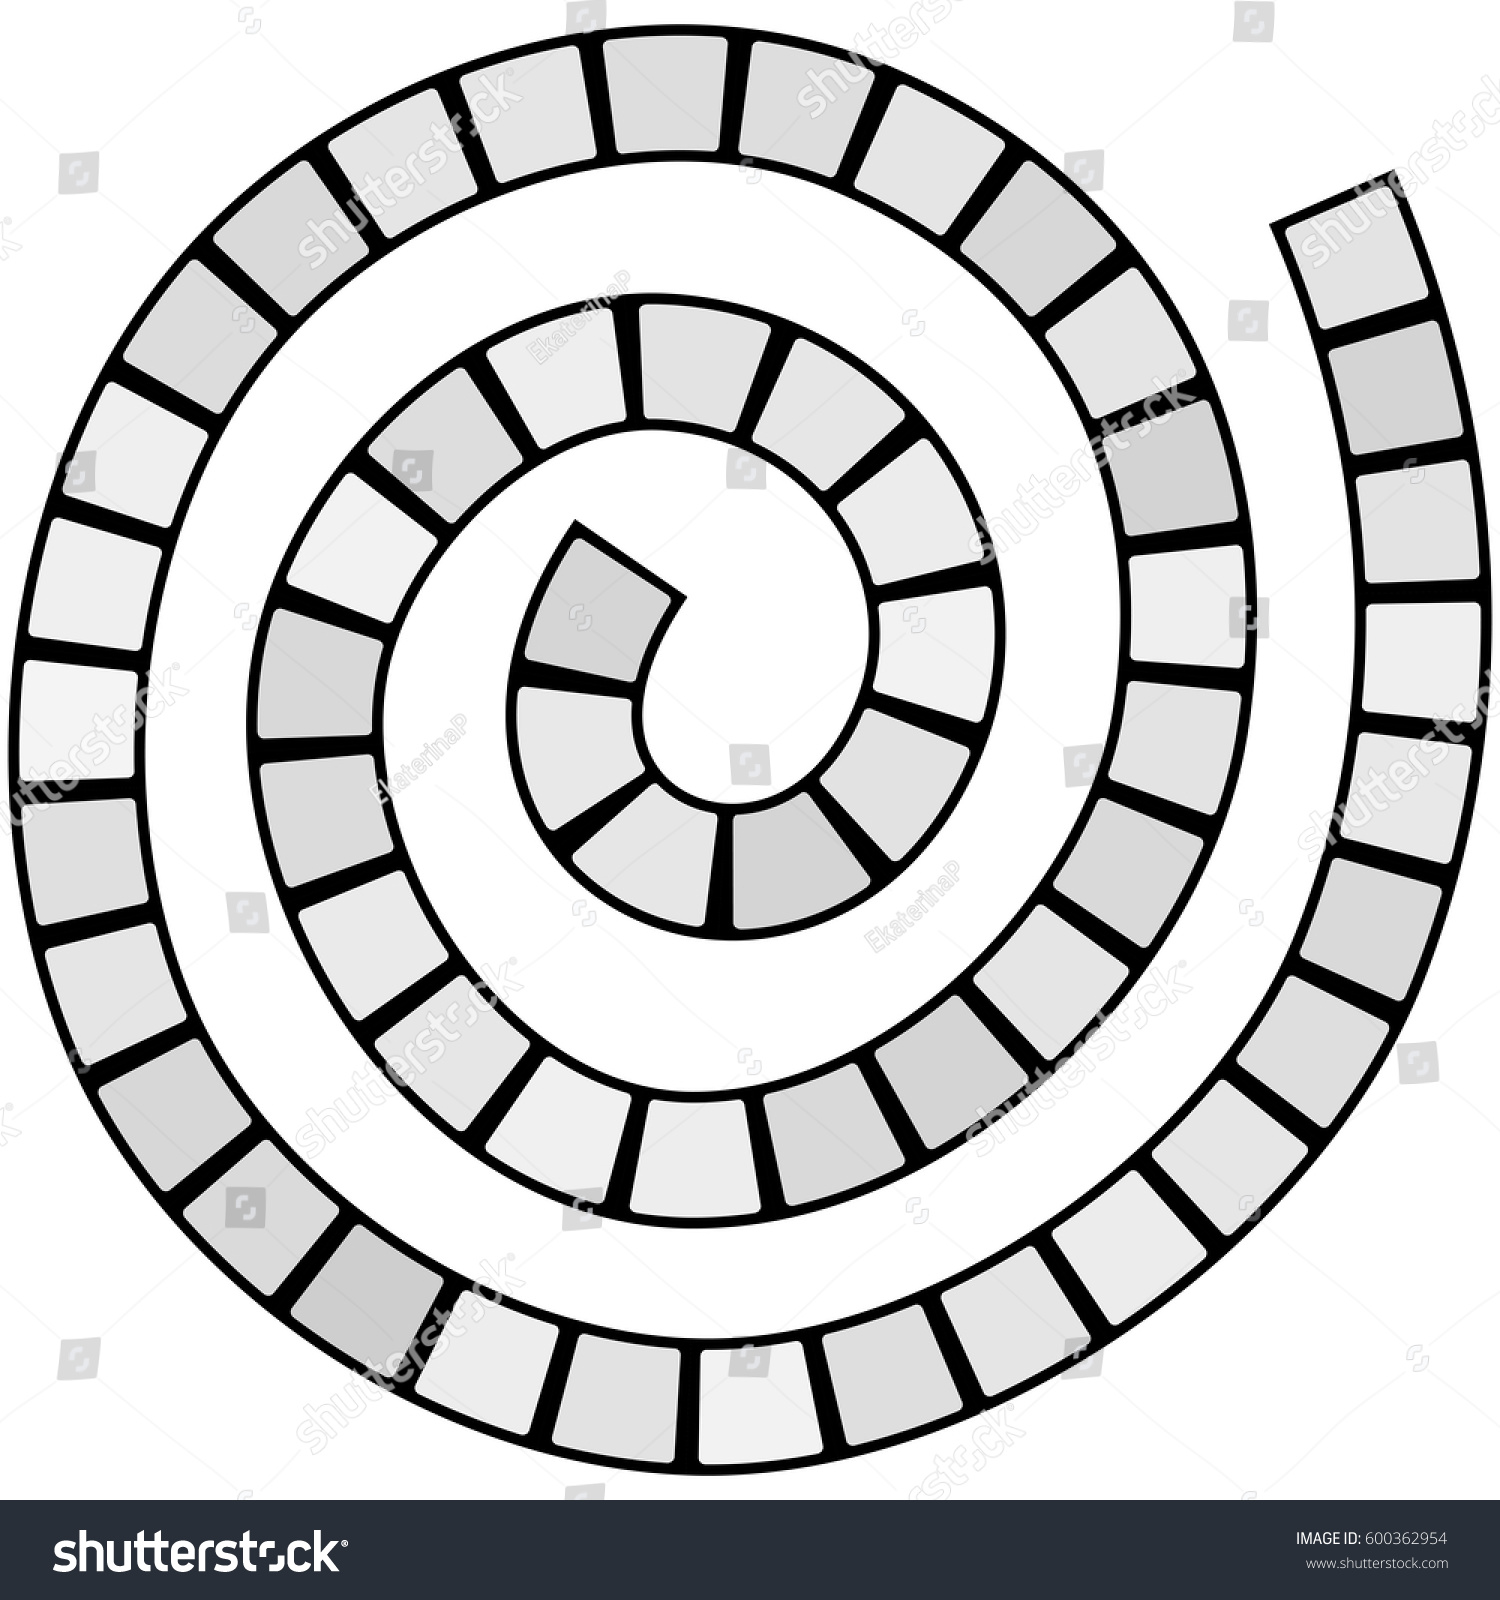 stock vector abstract futuristic spiral maze pattern template for children s games grey squares black contour 600362954 abstract futuristic spiral maze pattern template stock vector on spiral pattern template